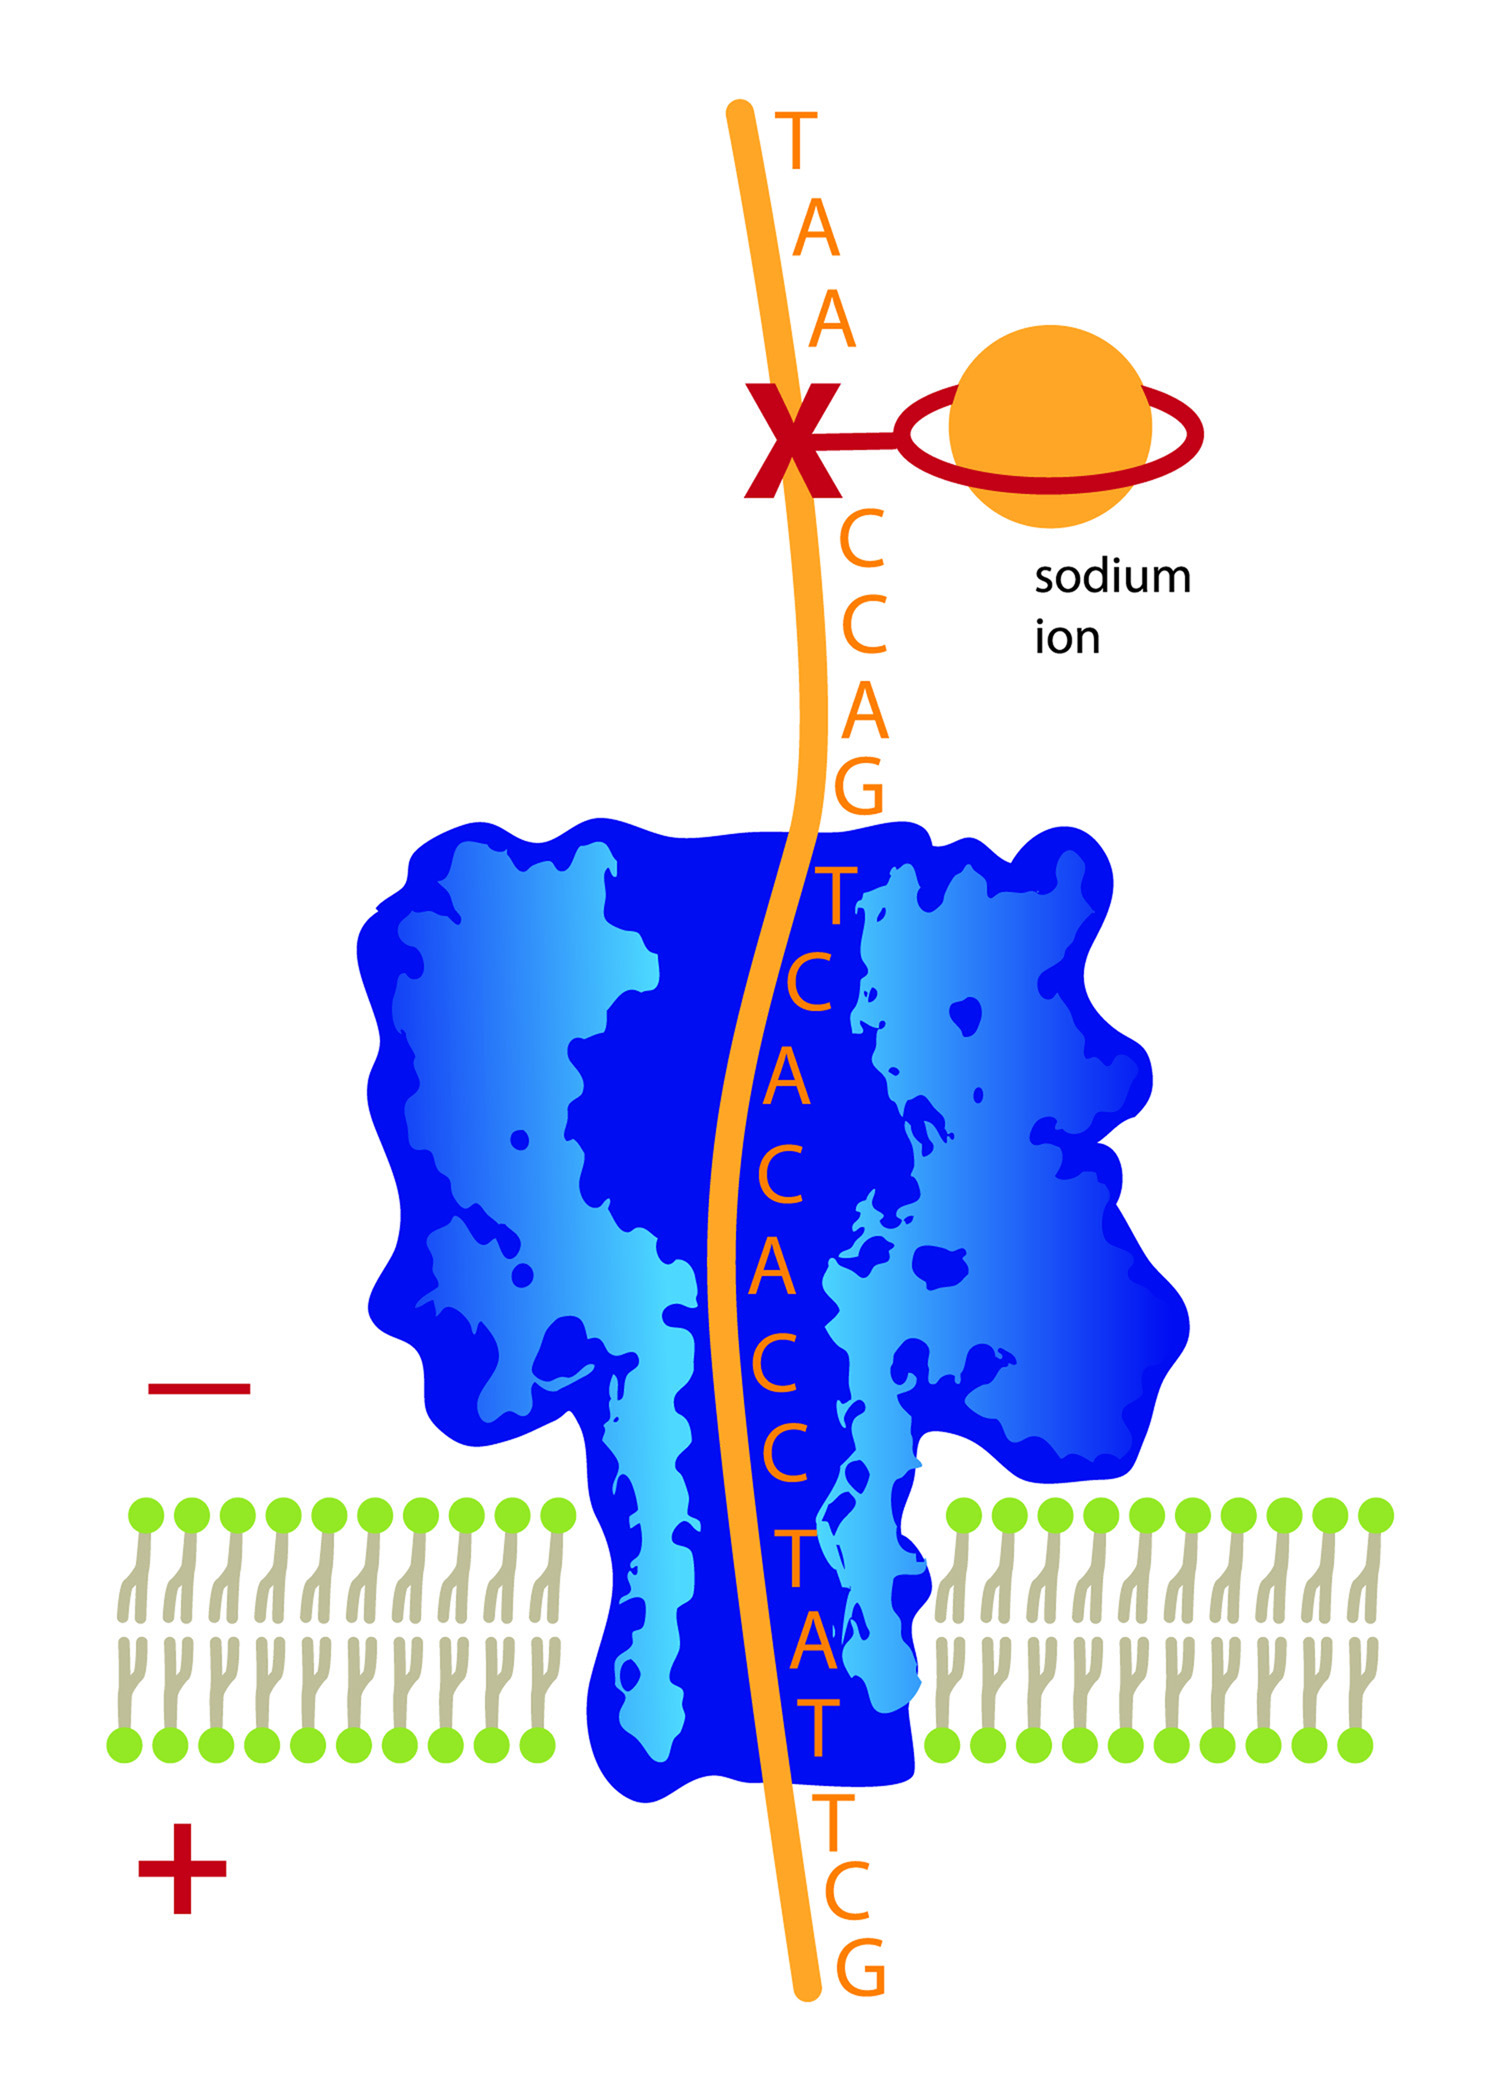 """This illustration shows a strand of DNA with nucleotide bases (A,T, G and C) attached, moving downward through a molecule-wide pore known as a """"nanopore."""" The """"X"""" marks the location of a missing base, a form of DNA damage that, if unrepaired, can lead to gene mutations and disease. By attaching a ring-shaped chemical to the damage site and placing a sodium ion inside the ring, movement of the DNA through the nanopore is slowed to the point that chemists can detect the DNA damage site. University of Utah chemists developed this new use of nanopore technology to detect DNA damage."""